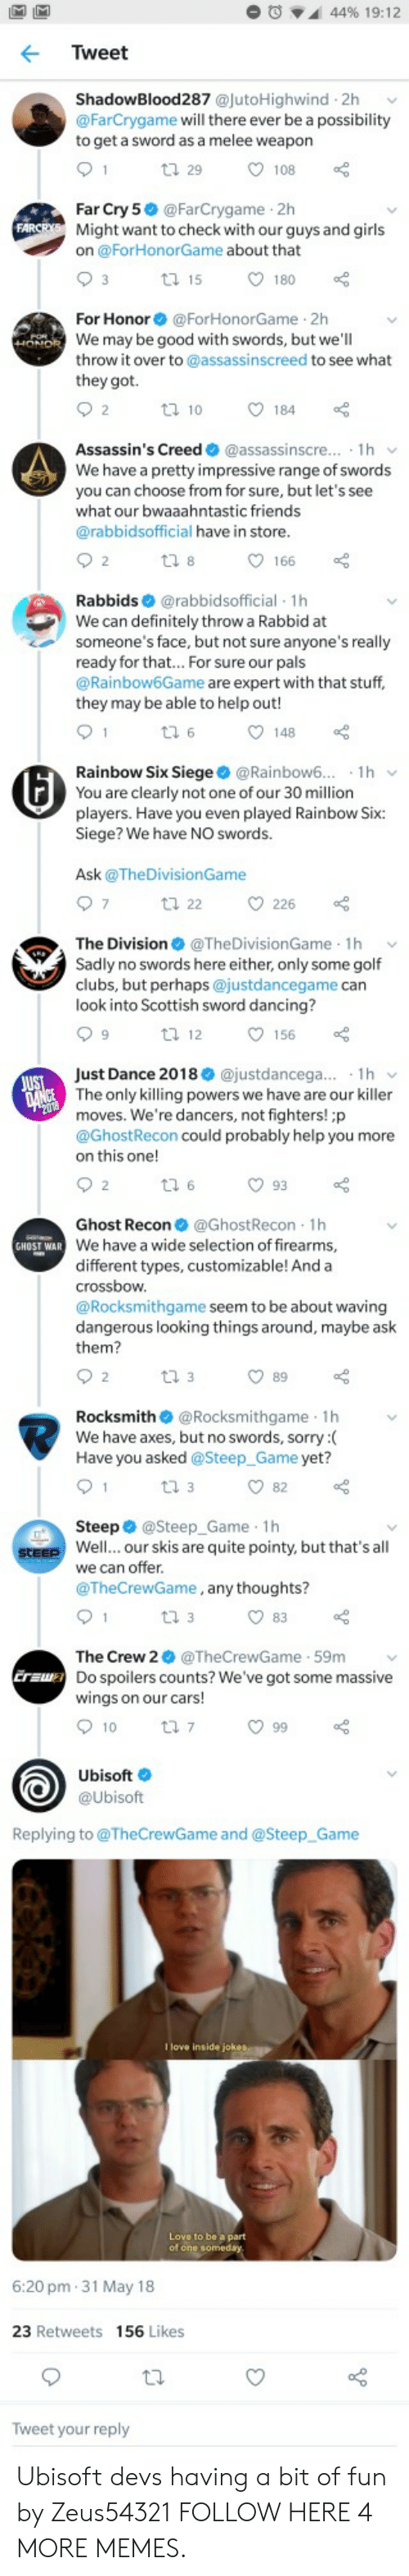 Ubisoft: M IM  44% 19:12  Tweet  ShadowBlood287 @jutoHighwind 2h  @FarCrygame will there ever be a possibility  to get a sword as a melee weapon  1  ti 29  108  Far Cry 5 @FarCrygame 2h  Might want to check with our guys and girls  on @ForHonorGame about that  FARCRYS  3  180  t 15  For Honor@ForHonorGame 2h  HONDR We may be good with swords, but we'll  throw it over to @assassinscreed to see what  POH  they got.  2  184  t10  Assassin's Creed @assassinscre... 1h  We have a pretty impressive range of swords  you can choose from for sure, but let's see  what our bwaaahntastic friends  @rabbidsofficial have in store.  2  166  ti 8  Rabbids @rabbidsofficial 1h  We can definitely throw a Rabbid at  someone's face, but not sure anyone's really  ready for that.. For sure our pals  @Rainbow6Game are expert with that stuff,  they may be able to help out!  1  148  Rainbow Six Siege @Rainbow6..  You are clearly not one of our 30 million  1h  players. Have you even played Rainbow Six:  Siege? We have NO swords.  Ask@TheDivisionGame  7  226  t 22  The Division@The DivisionGame 1h  Sadly no swords here either, only some golf  clubs, but perhaps @justdancegame can  look into Scottish sword dancing?  9  156  t 12  Just Dance 2018 @justdancega... 1h  JUST  DANCE The only killing powers we have are our killer  moves. We're dancers, not fighters! ;p  @GhostRecon could probably help you more  on this one!  93  2  t 6  Ghost Recon @GhostRecon 1h  GHOST WAR We have a wide selection of firearms,  different types, customizable! And a  crossbow  @Rocksmithgame seem to be about waving  dangerous looking things around, maybe ask  them?  2  89  t 3  Rocksmith@Rocksmithgame 1h  We have axes, but no swords, sorry :  Have you asked @Steep_Game yet?  1  82  t 3  Steep @Steep_Game 1h  steep Well... our skis are quite pointy, but that's all  we can offer.  @TheCrewGame, any thoughts?  1  t 3  83  The Crew 2@TheCrewGame 59m  Eraw Do spoilers counts? We've got some massive  wings on our cars!  10  t 